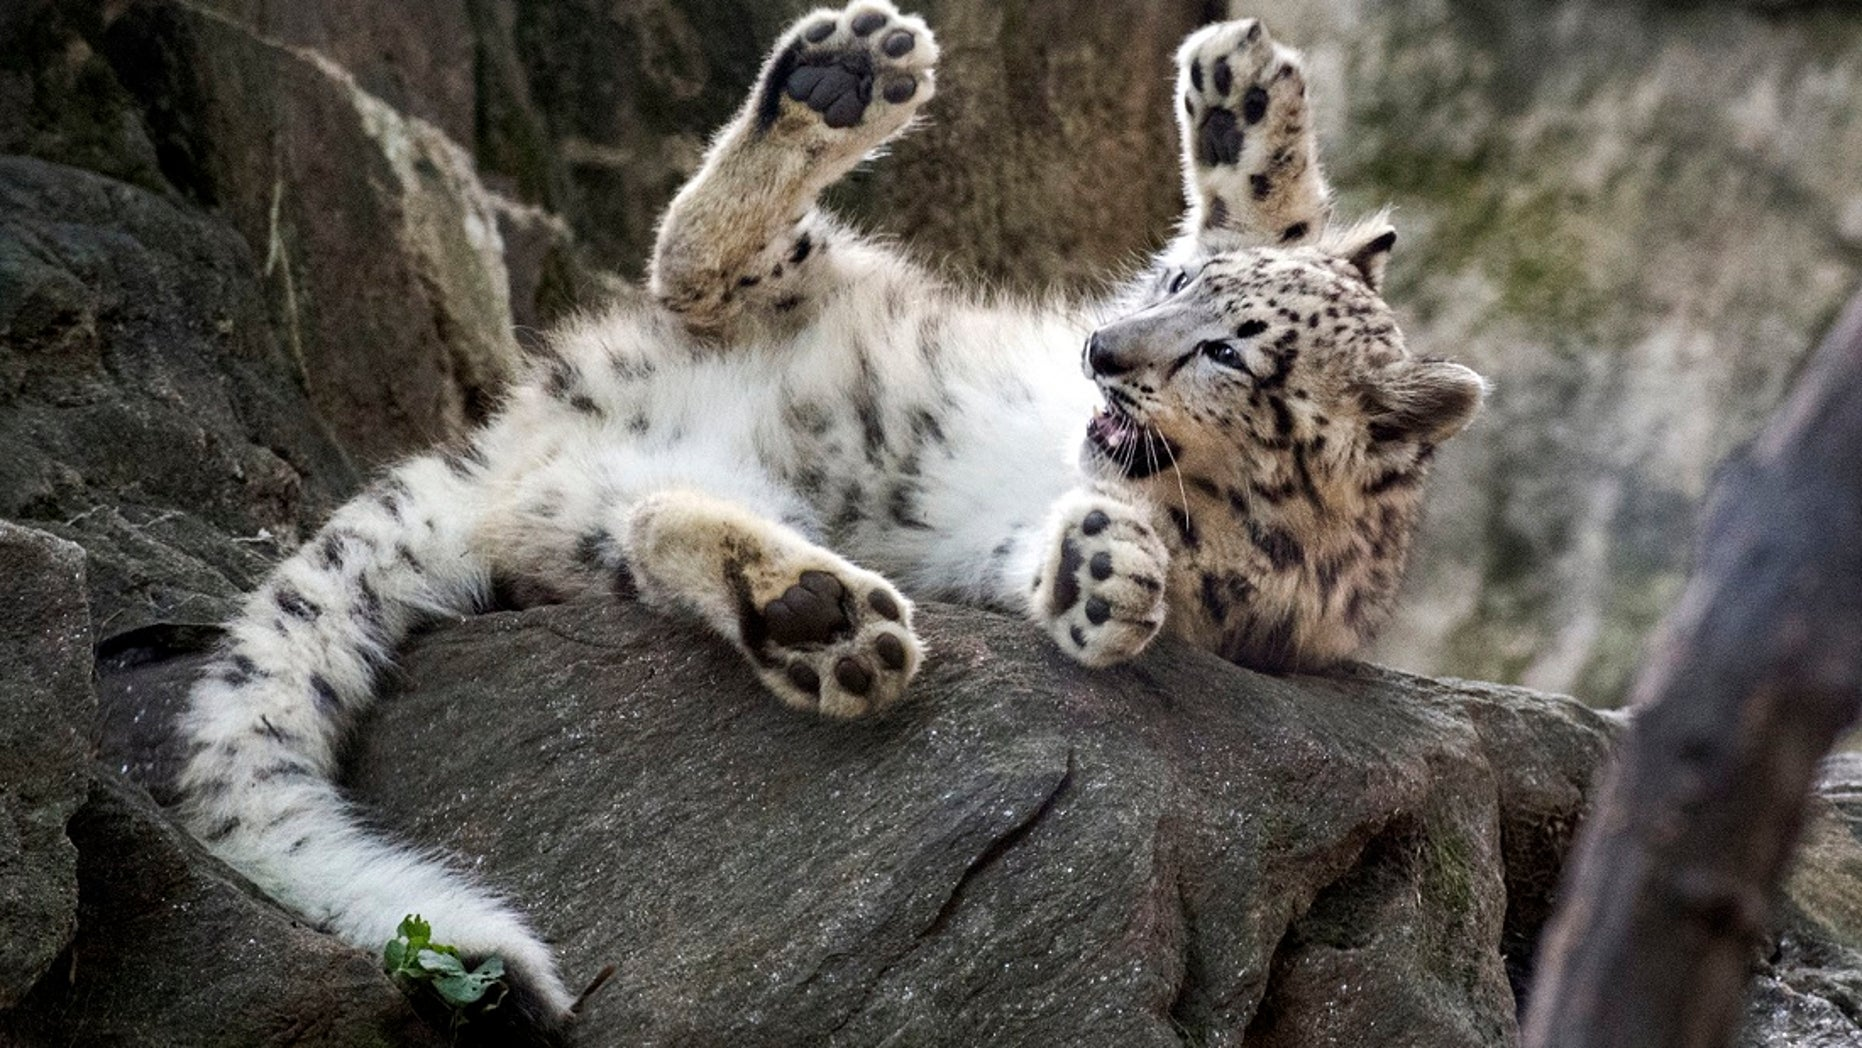 A female snow leopard cub at the Bronx Zoo. The zoo announced Thursday that the snow leopard cub has made its public debut just in time for Halloween.